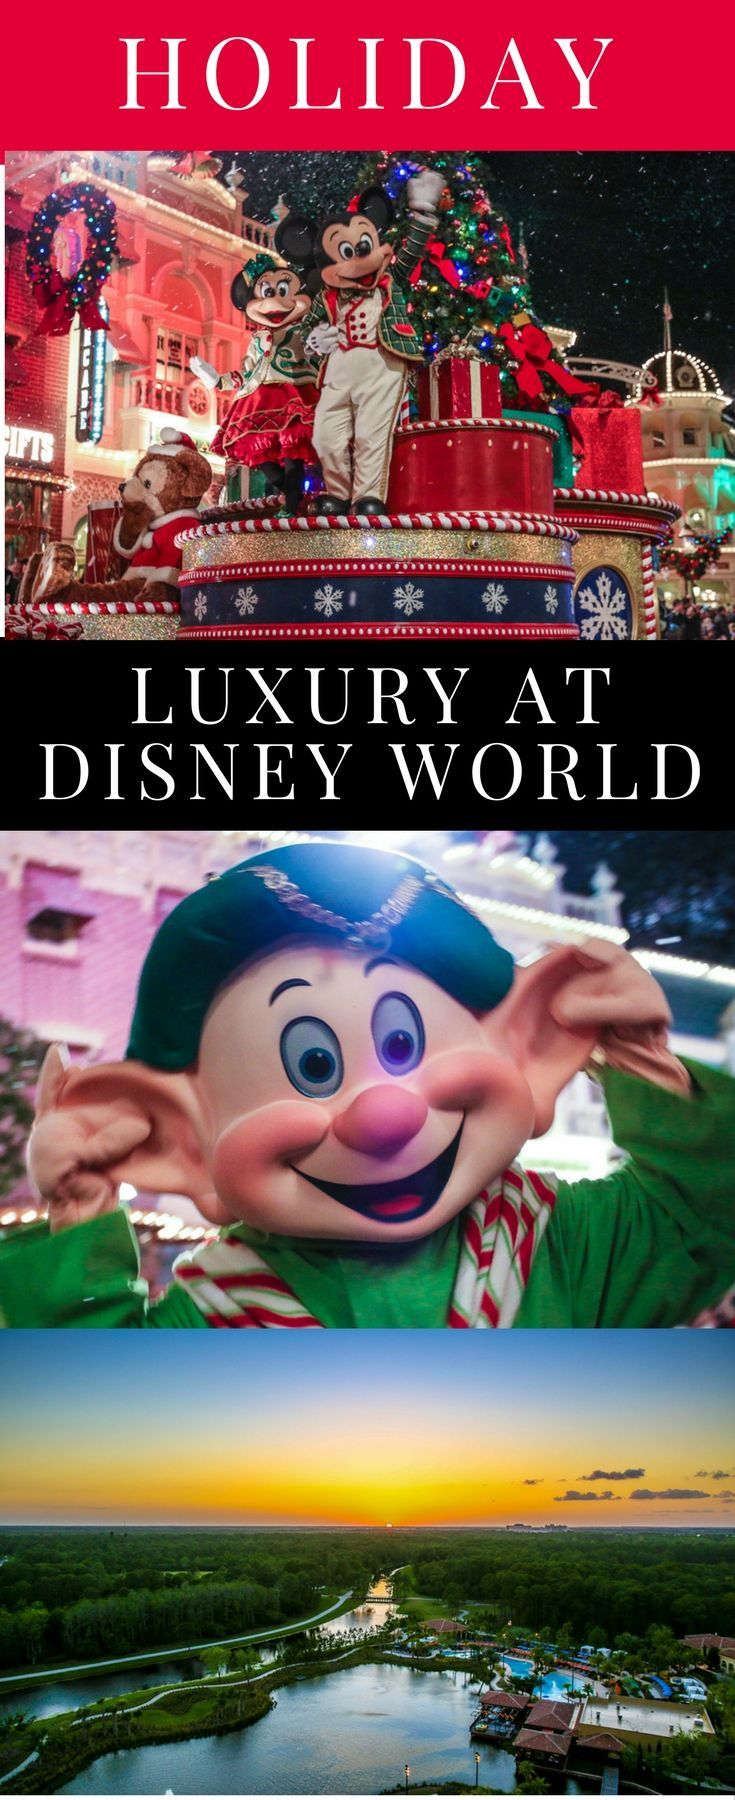 Mickey's Very Merry Christmas Party is a perfect long weekend trip to Disney World. Let us help you plan the perfect trip before the crowds.